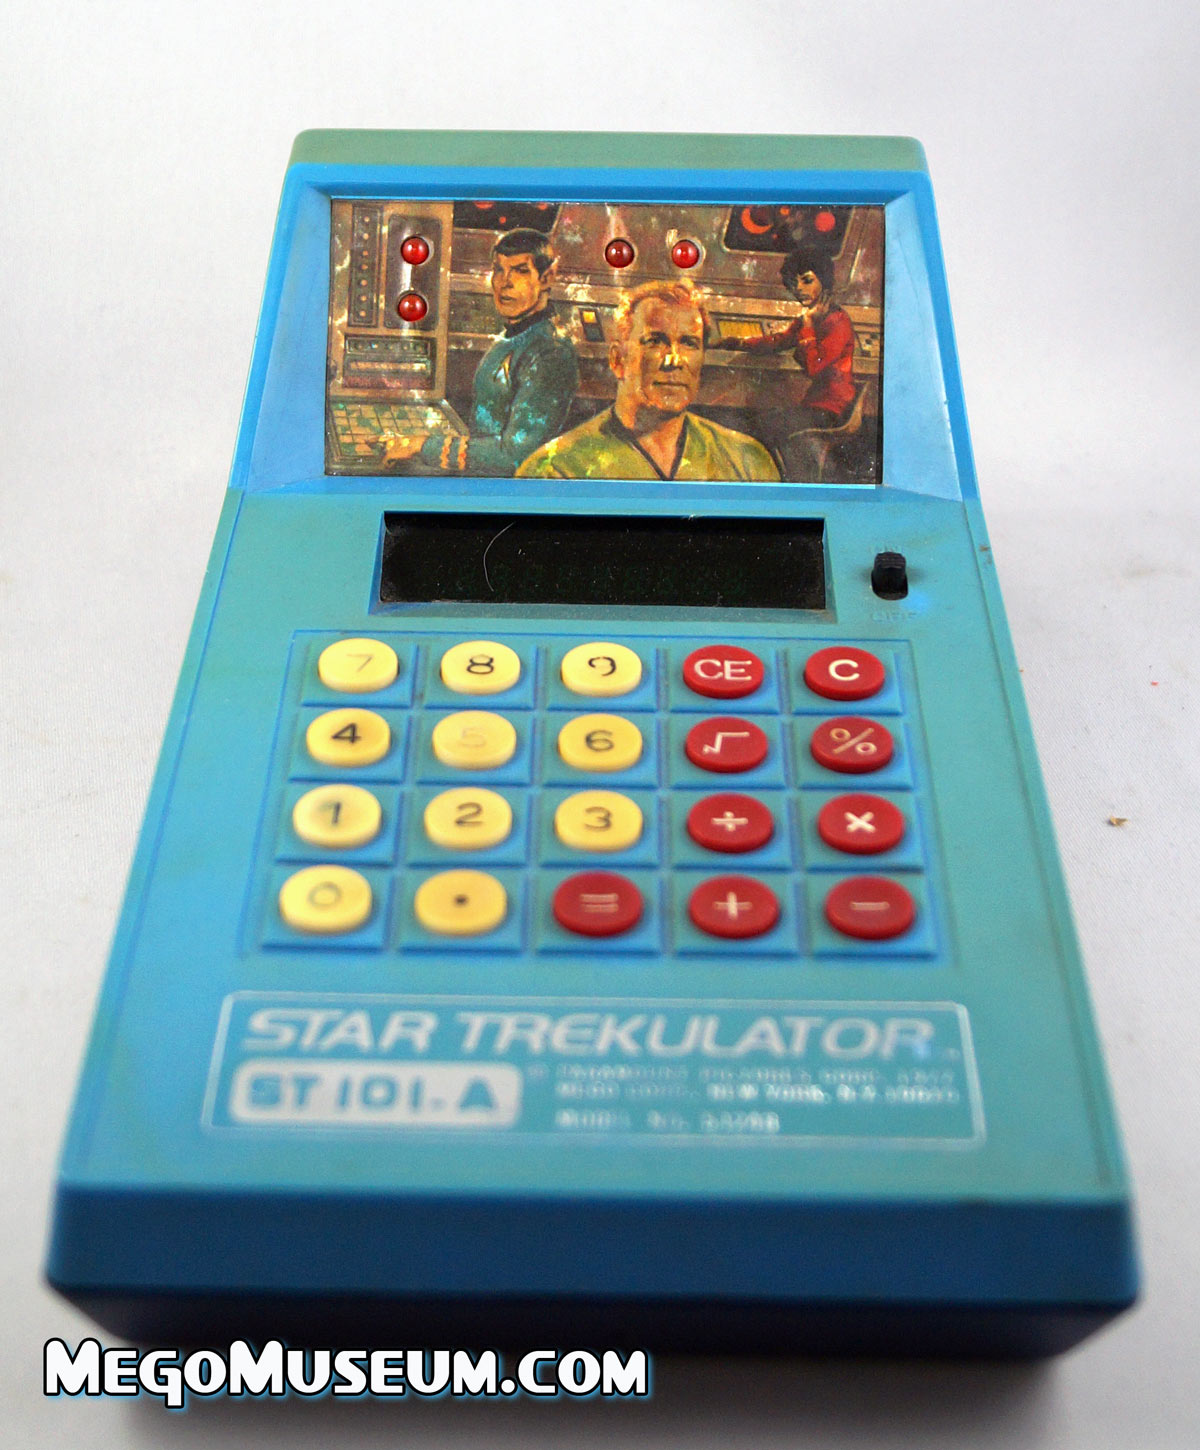 Mego Star Trek Trekulator